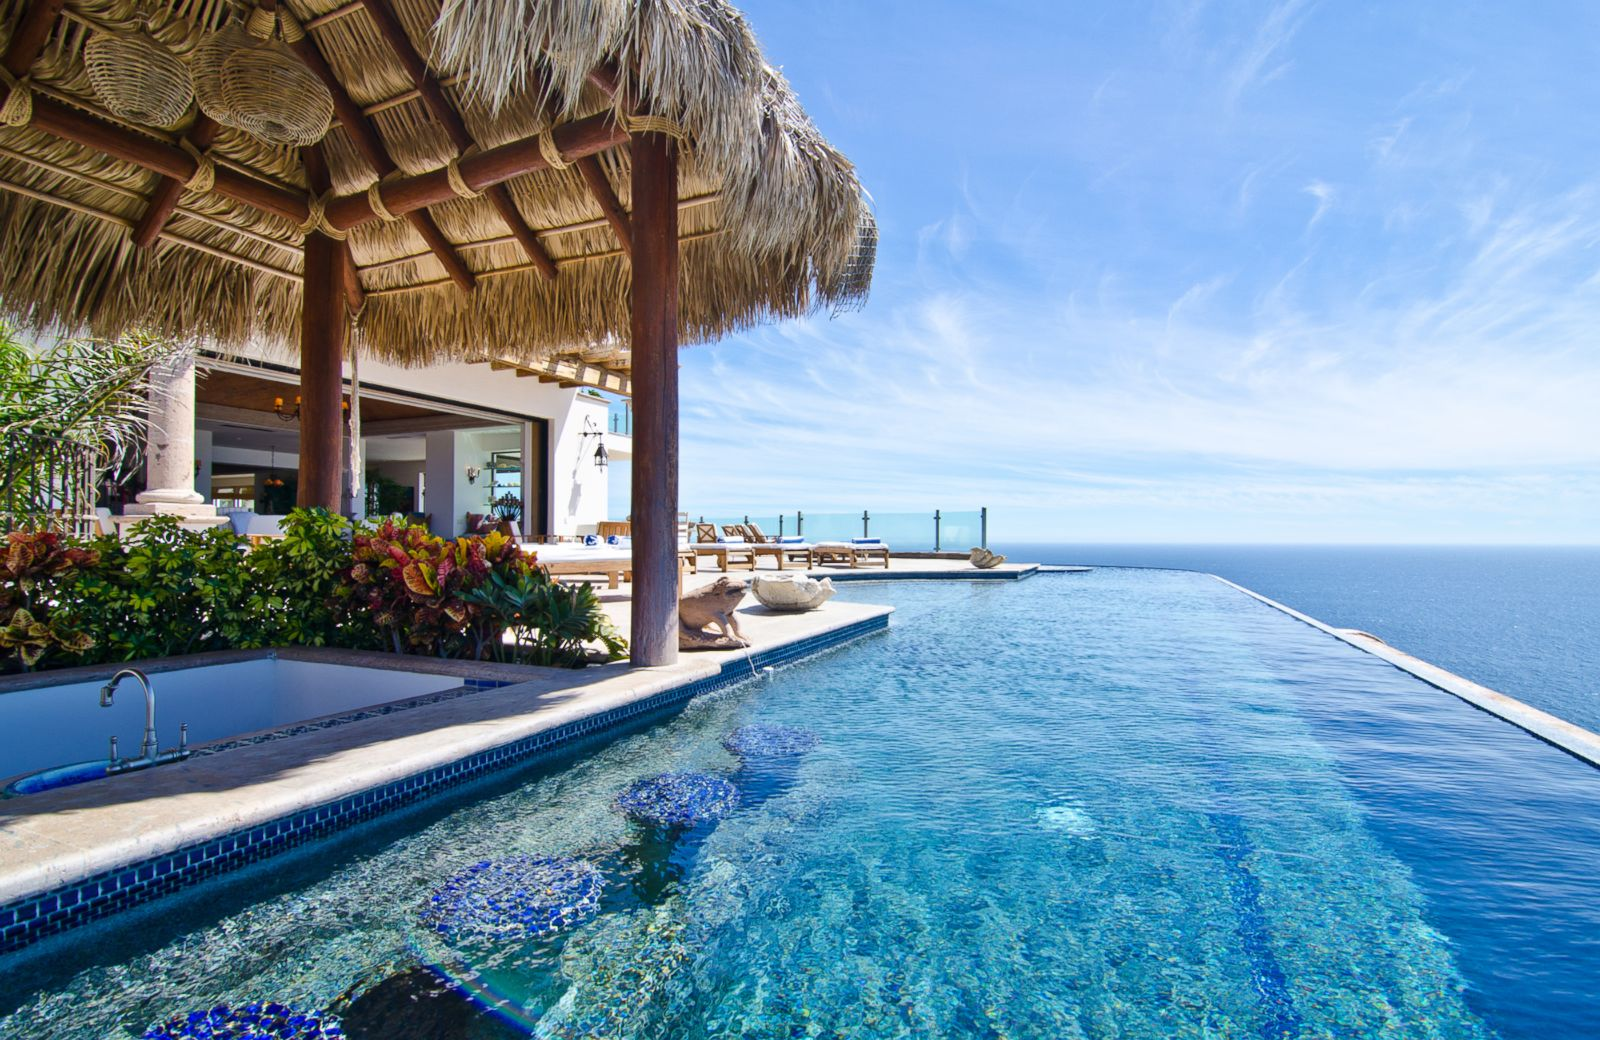 the 10 best infinity pools in the world according to tripadvisor. Black Bedroom Furniture Sets. Home Design Ideas